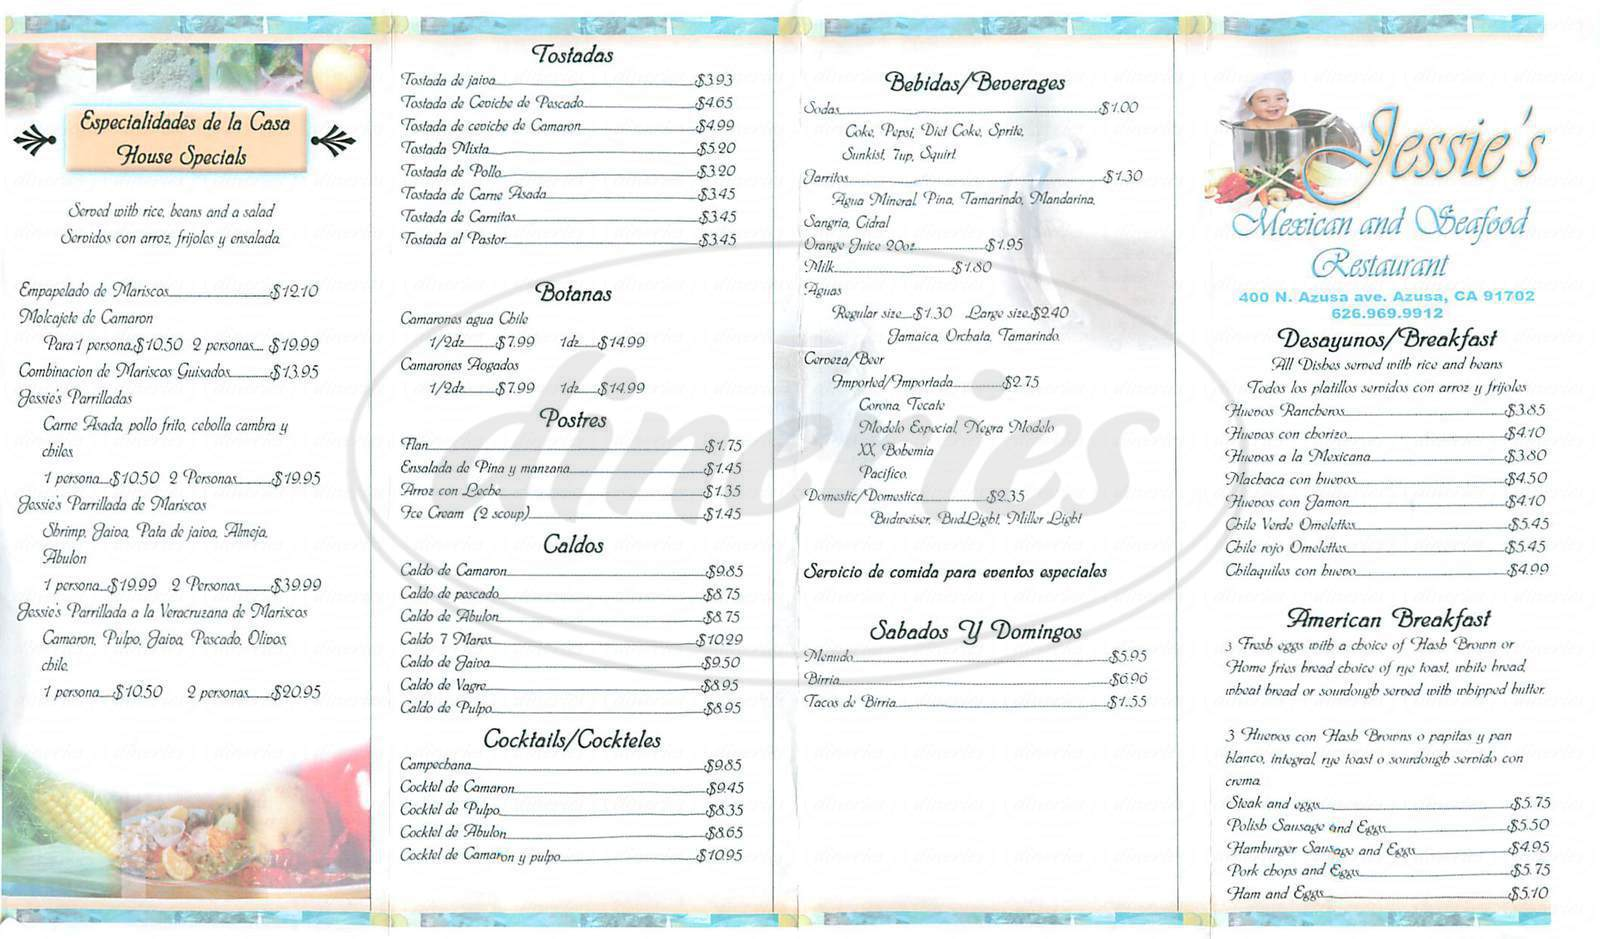 menu for Jessie's Mexican Restaurant